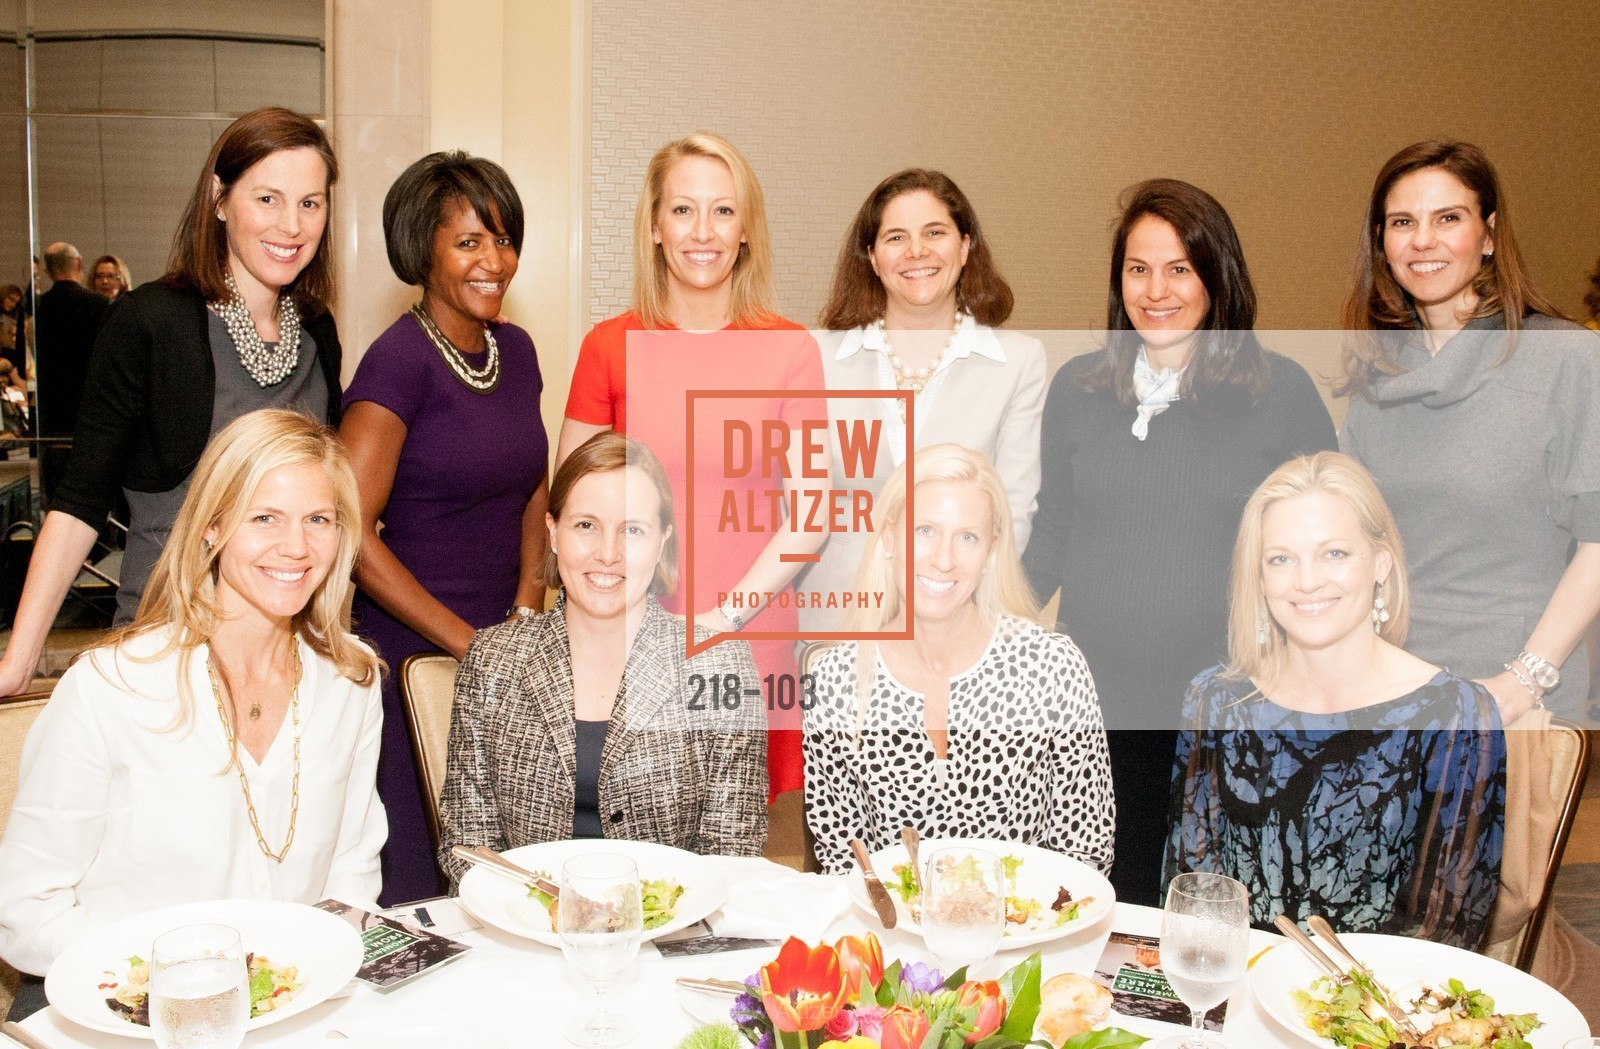 Mary Miller, Mary Graf, Jeana Toney, Katie Rothschild, Julia Hartz, Andrea Zola, USF's Women in Leadership & Philanthropy Luncheon, Four Seasons. 757 Market St, San Francisco, CA‎, May 14th, 2015,Drew Altizer, Drew Altizer Photography, full-service agency, private events, San Francisco photographer, photographer california